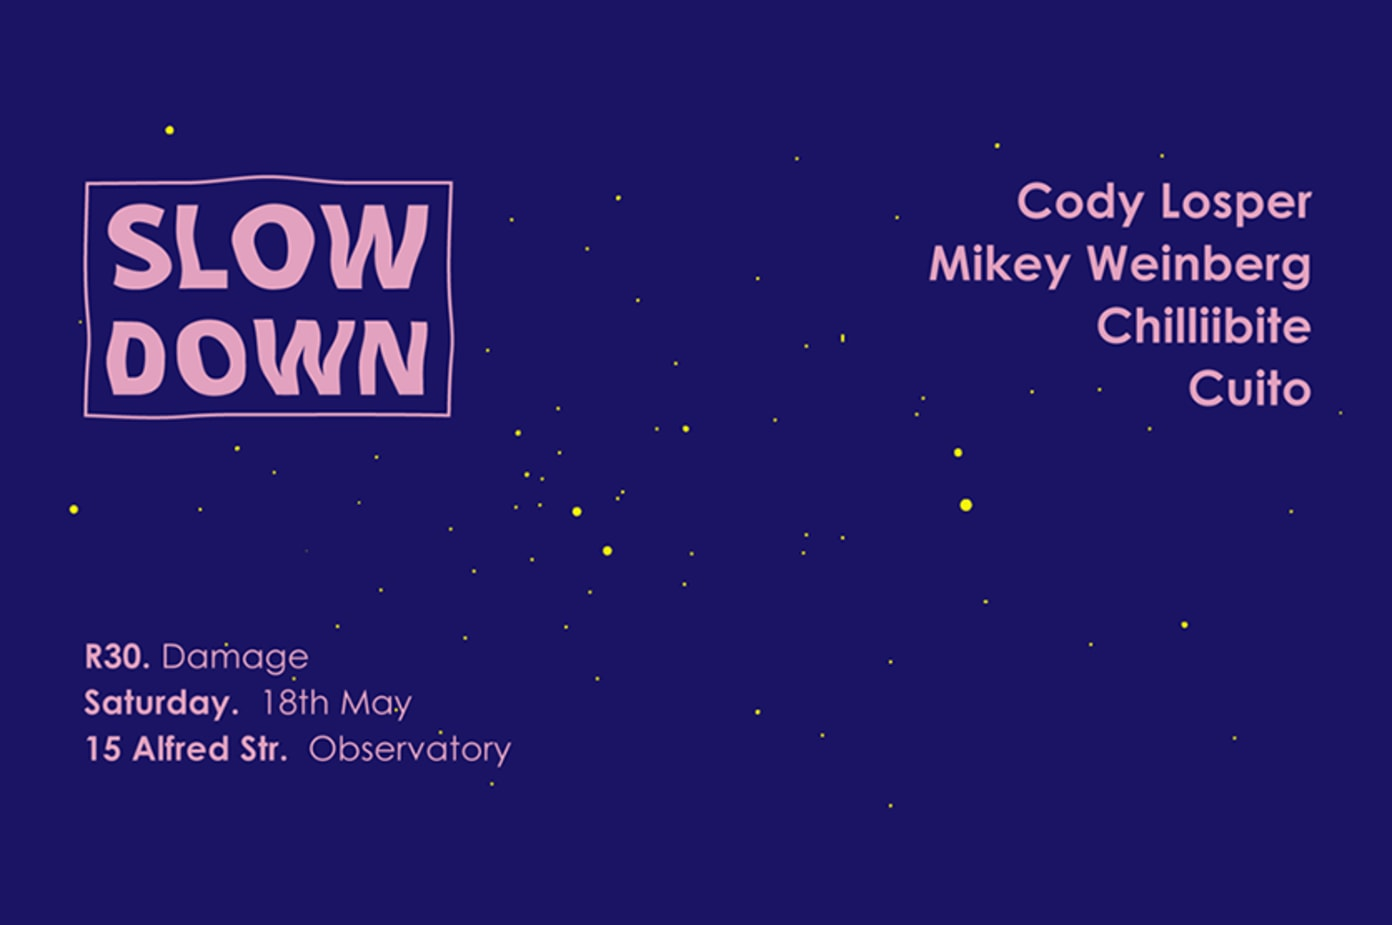 Slow Down / House Party (18 May)